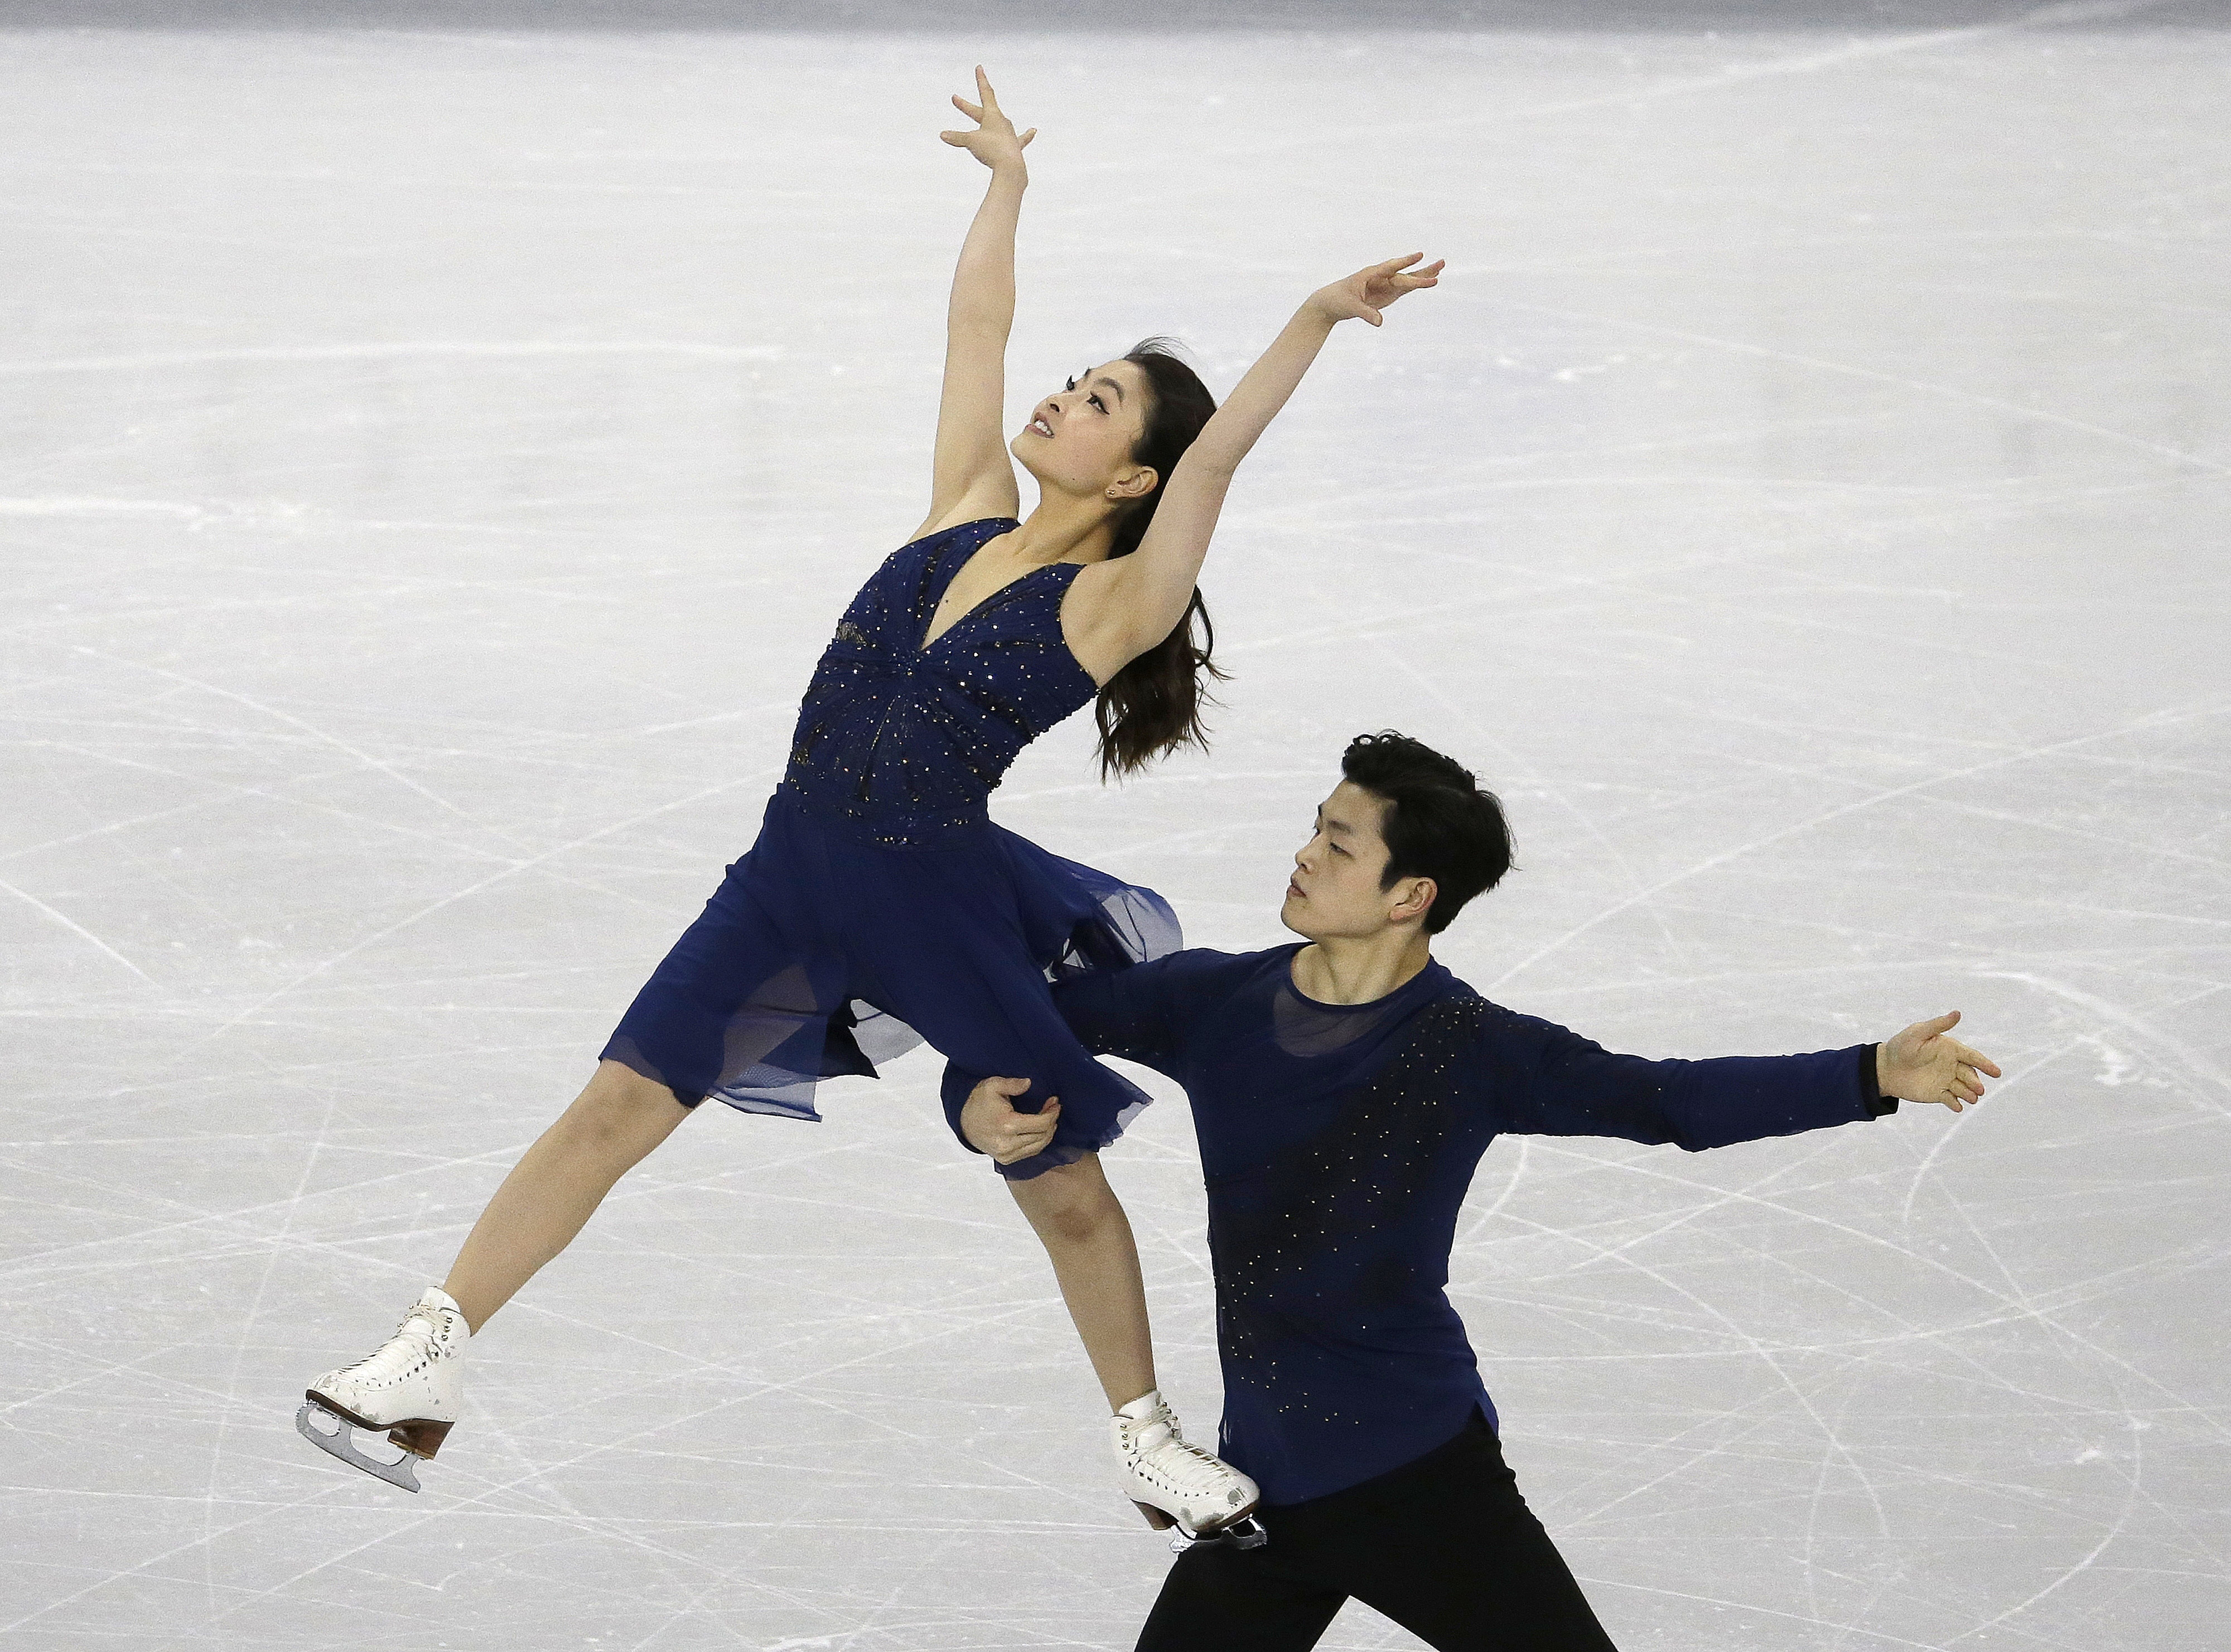 Silver medallists Maia Shibutani and Alex Shibutani of the United States perform in the Ice Dance Free Dance at the ISU Four Continents Figure Skating Championships in Gangneung, South Korea, Friday, Feb. 17, 2017. (AP Photo/Ahn Young-joon)